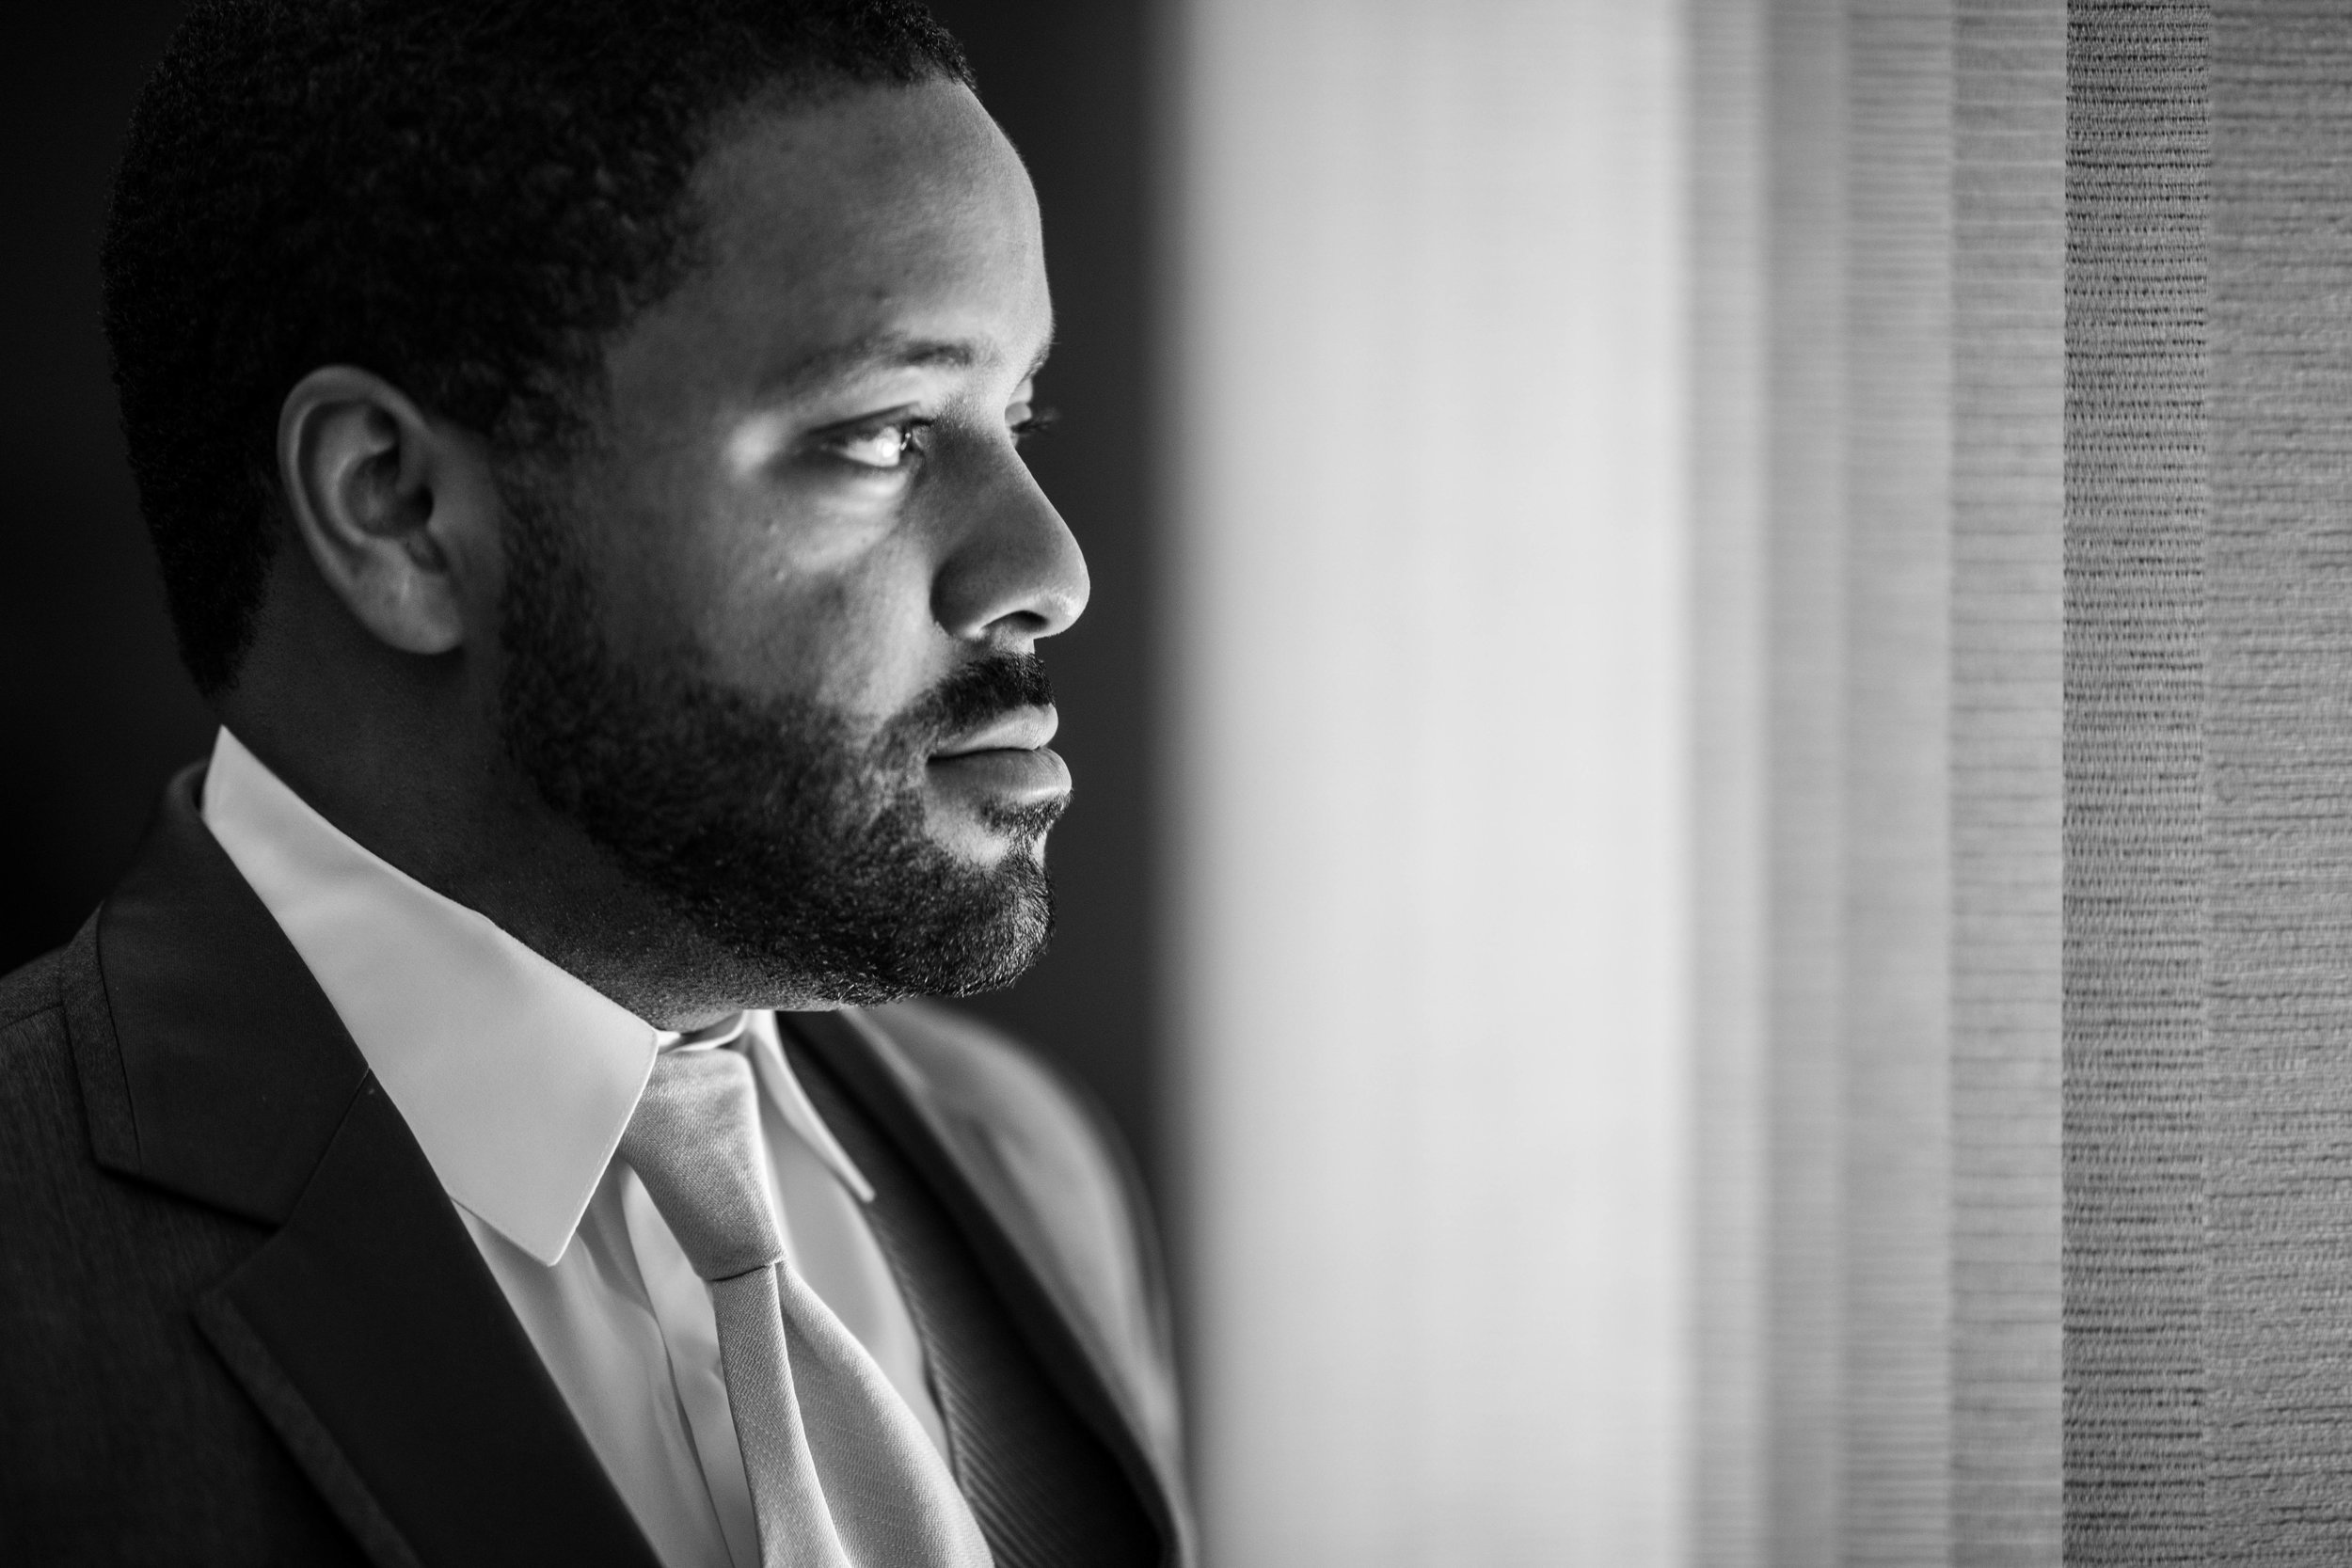 dramatic Black and White photo of the groom looking out of a window